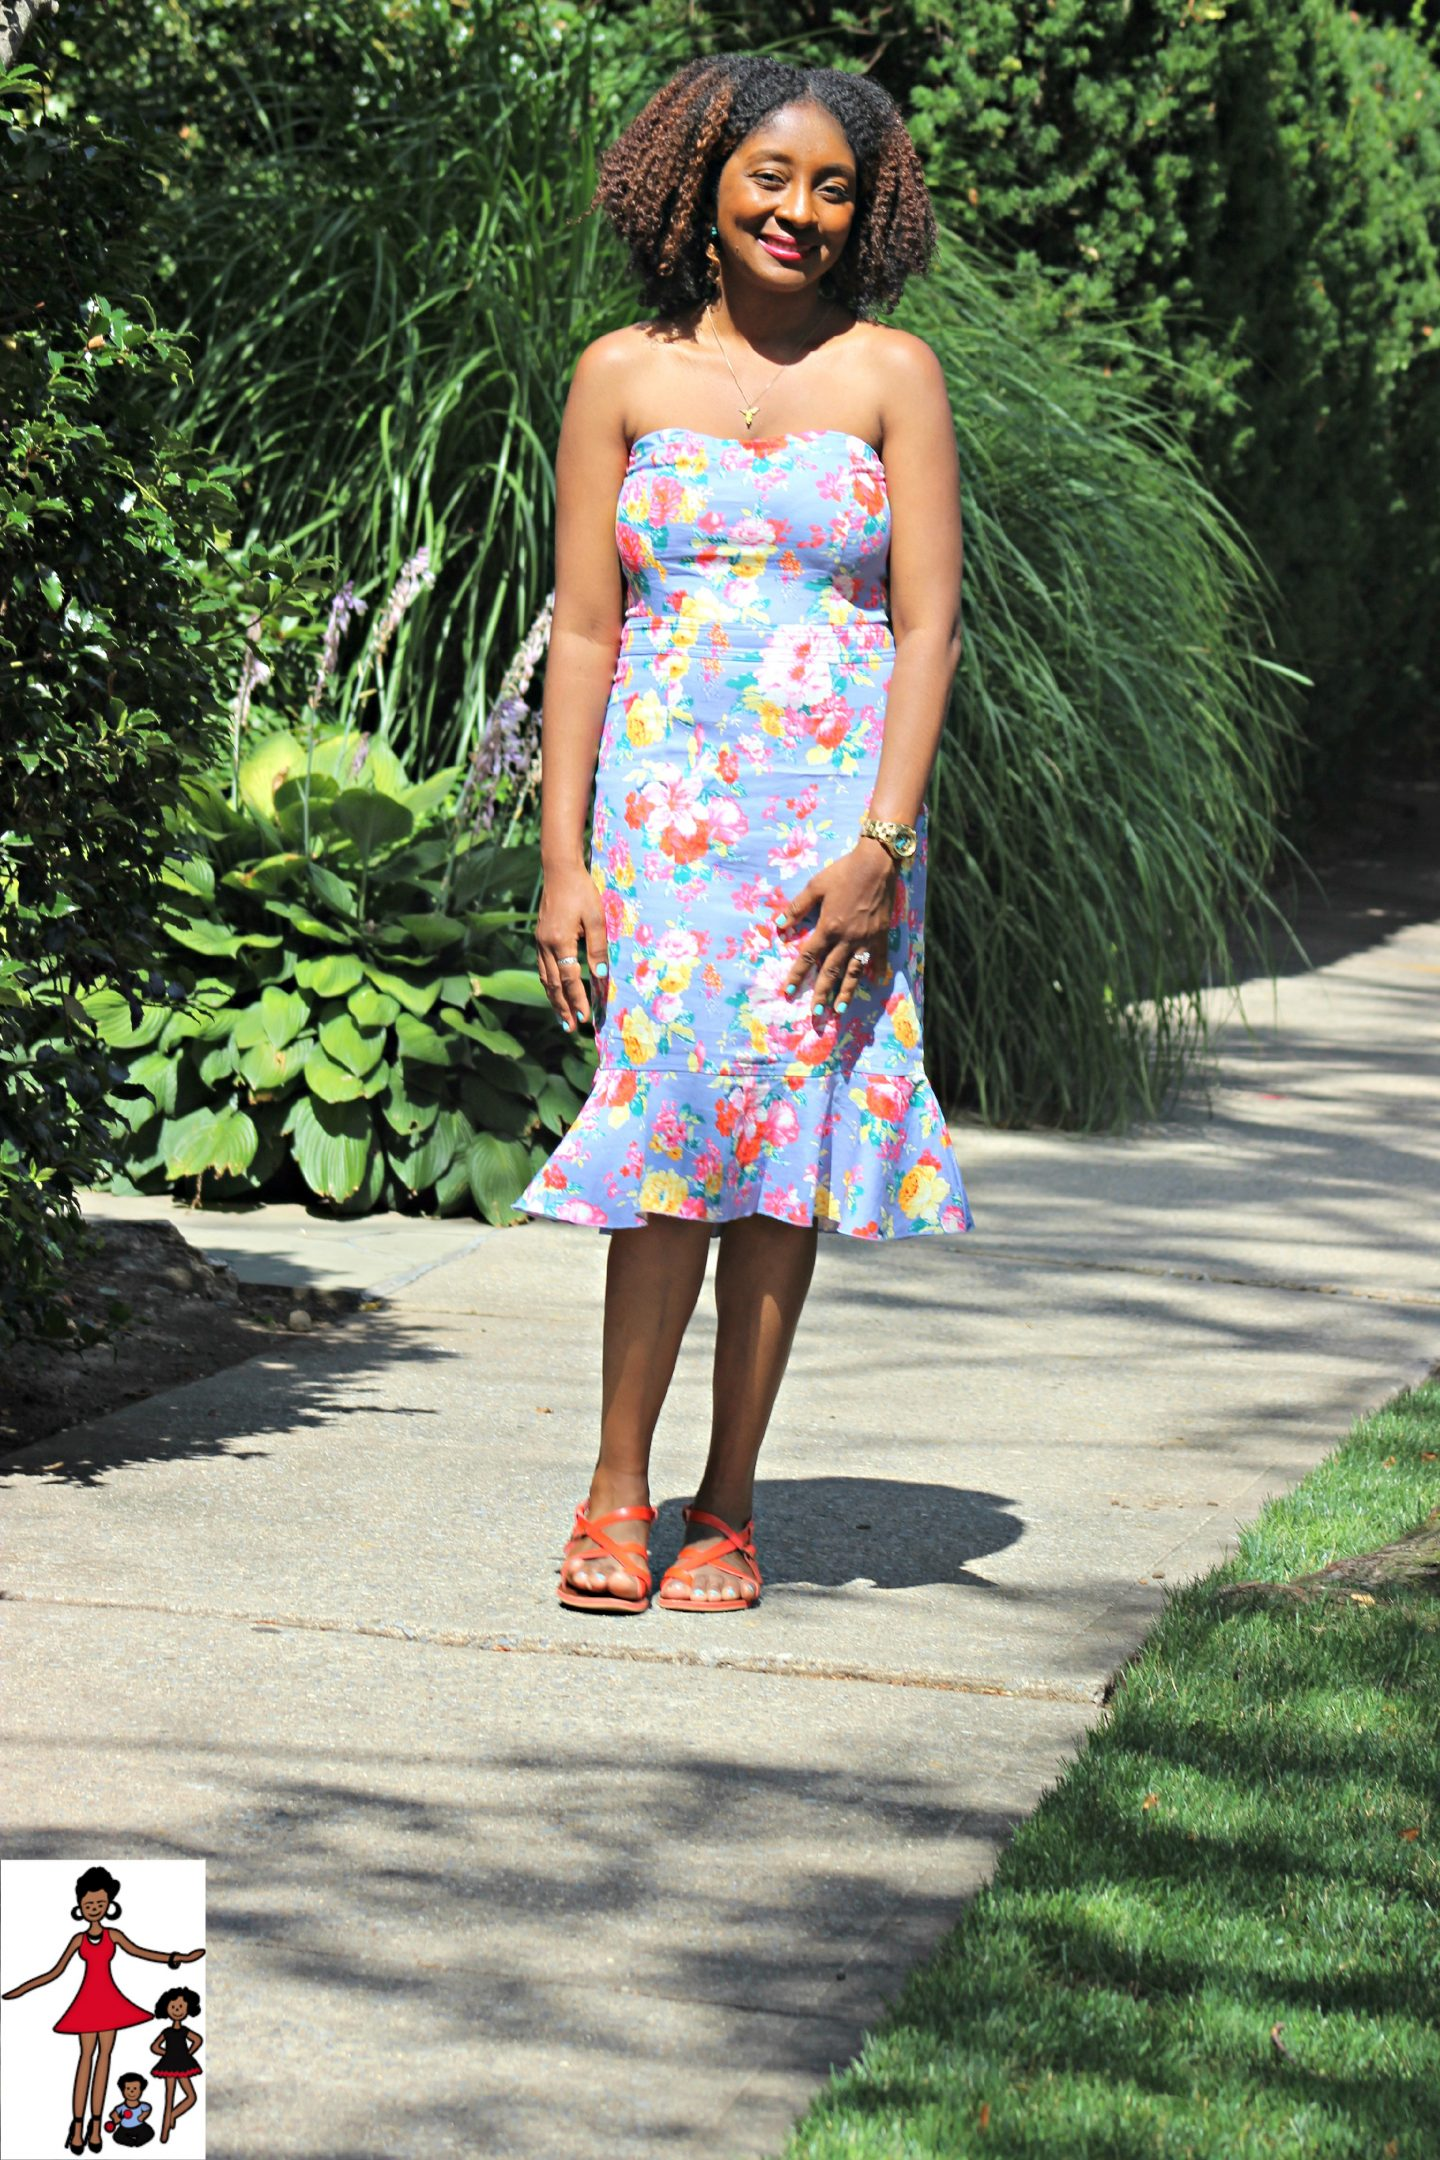 Fashion Friday: Floral Strapless Dress